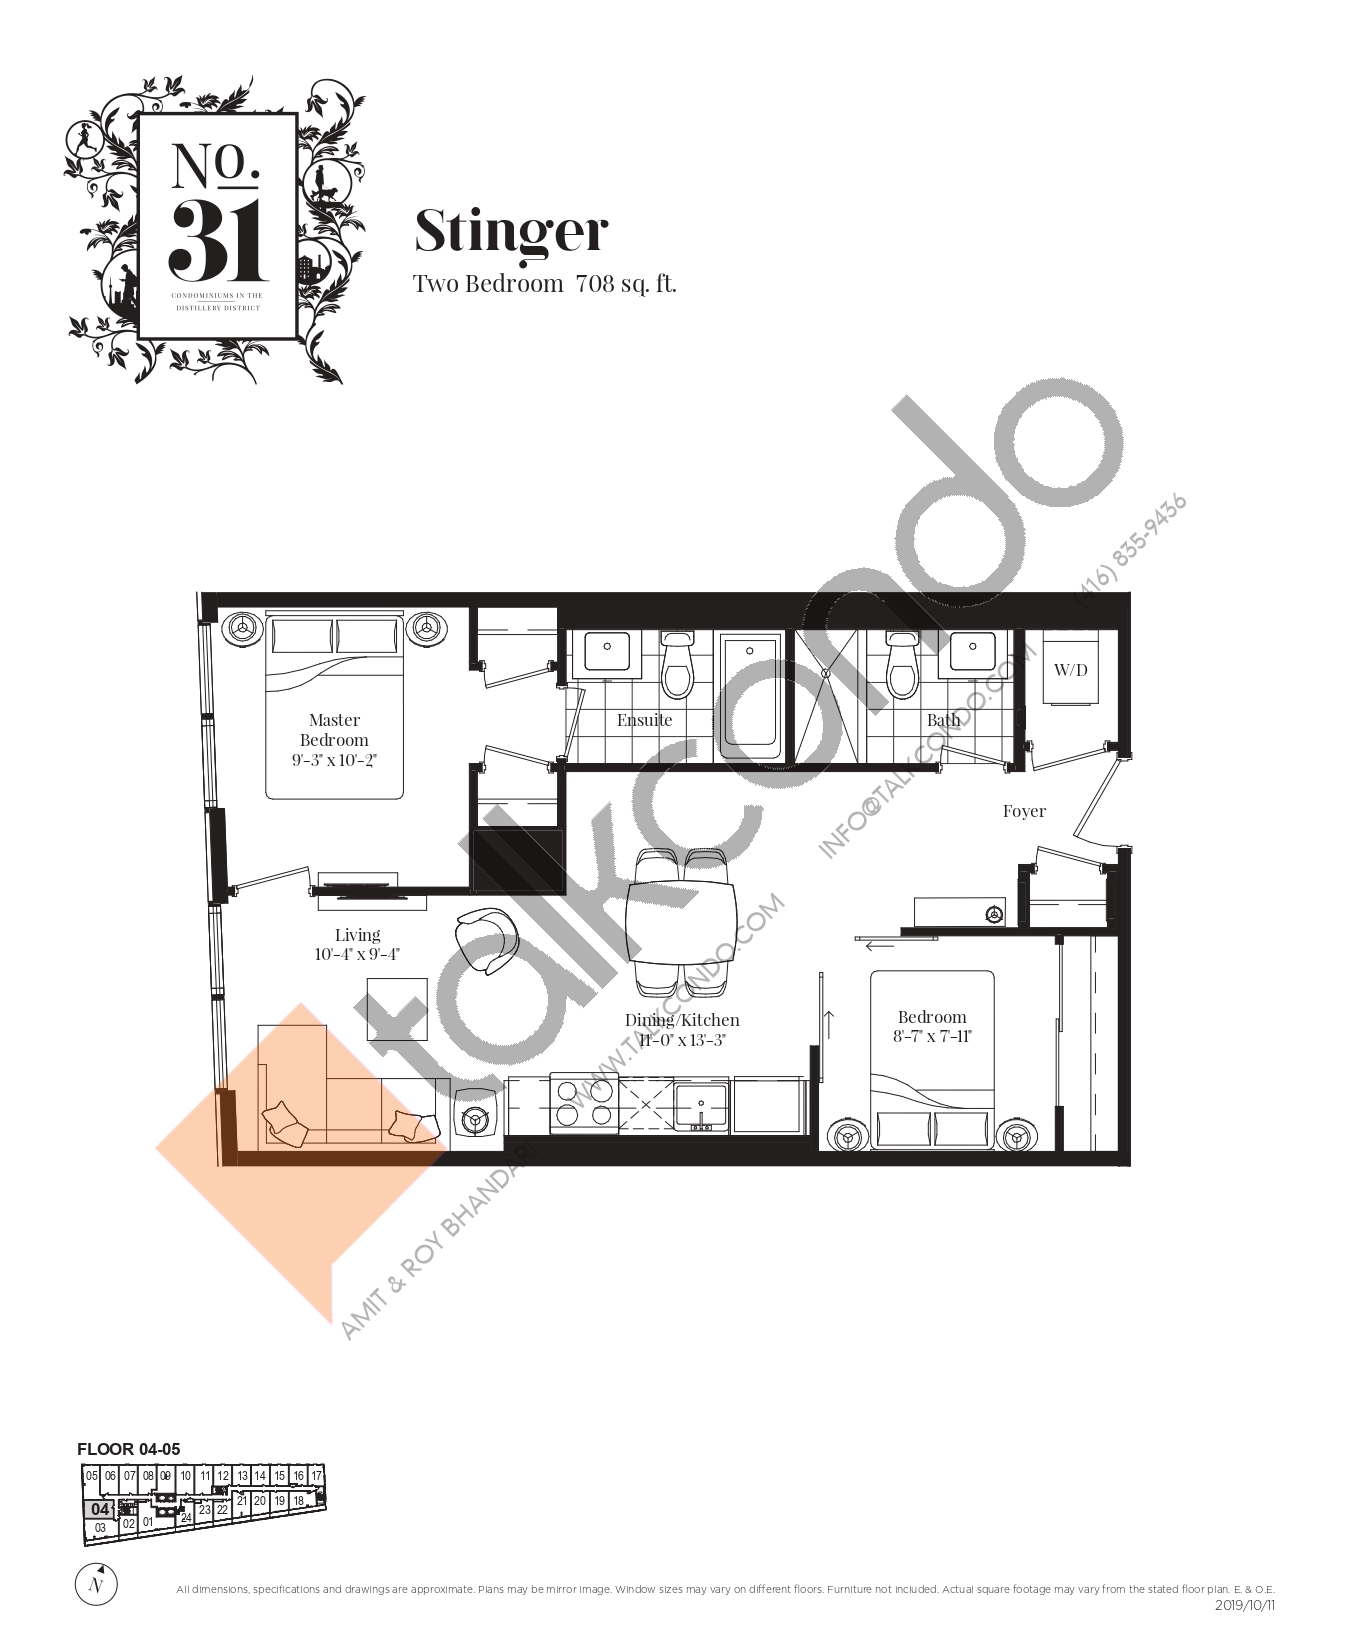 Stinger Floor Plan at No. 31 Condos - 708 sq.ft